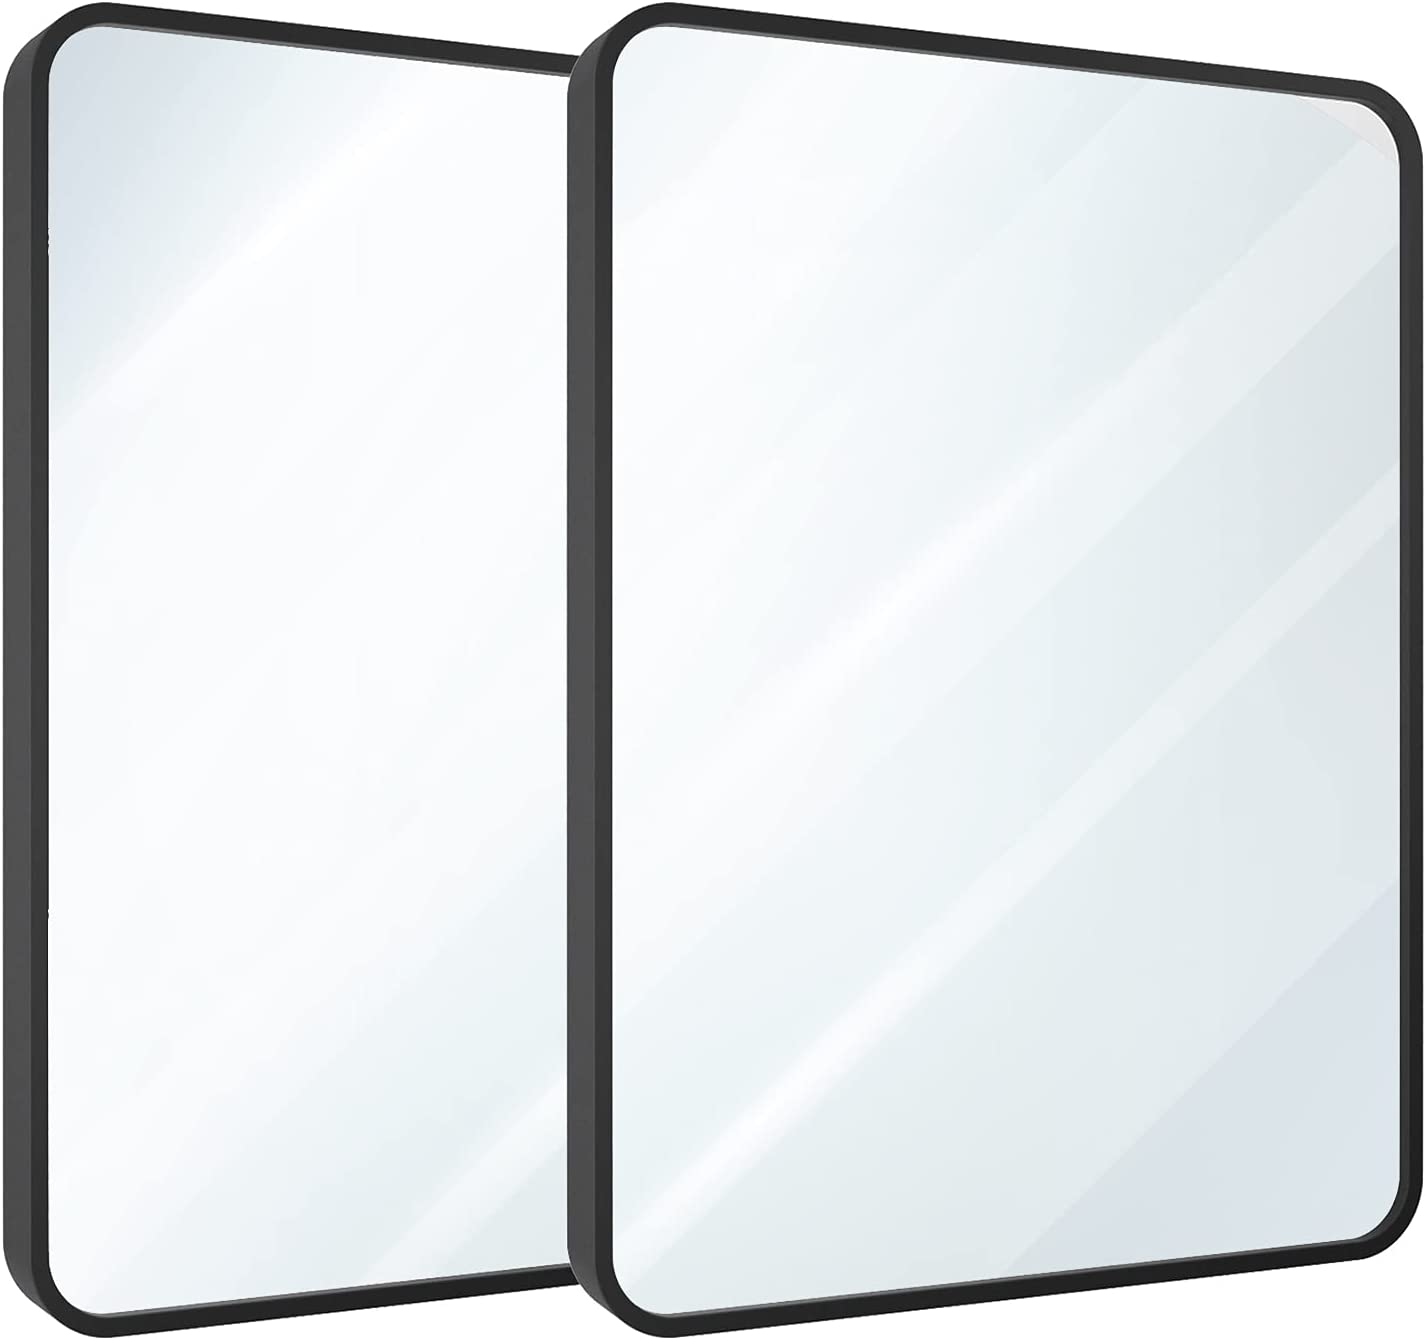 """USHOWER 24"""" x 36"""" Black Rectangle Wall Mirror, Large Metal Frame Decor Mirror for Bathroom, Entryway, Vanity, and More, Rounded Corner, Farmhouse & Modern Style, 2 Pack: Kitchen & Dining"""